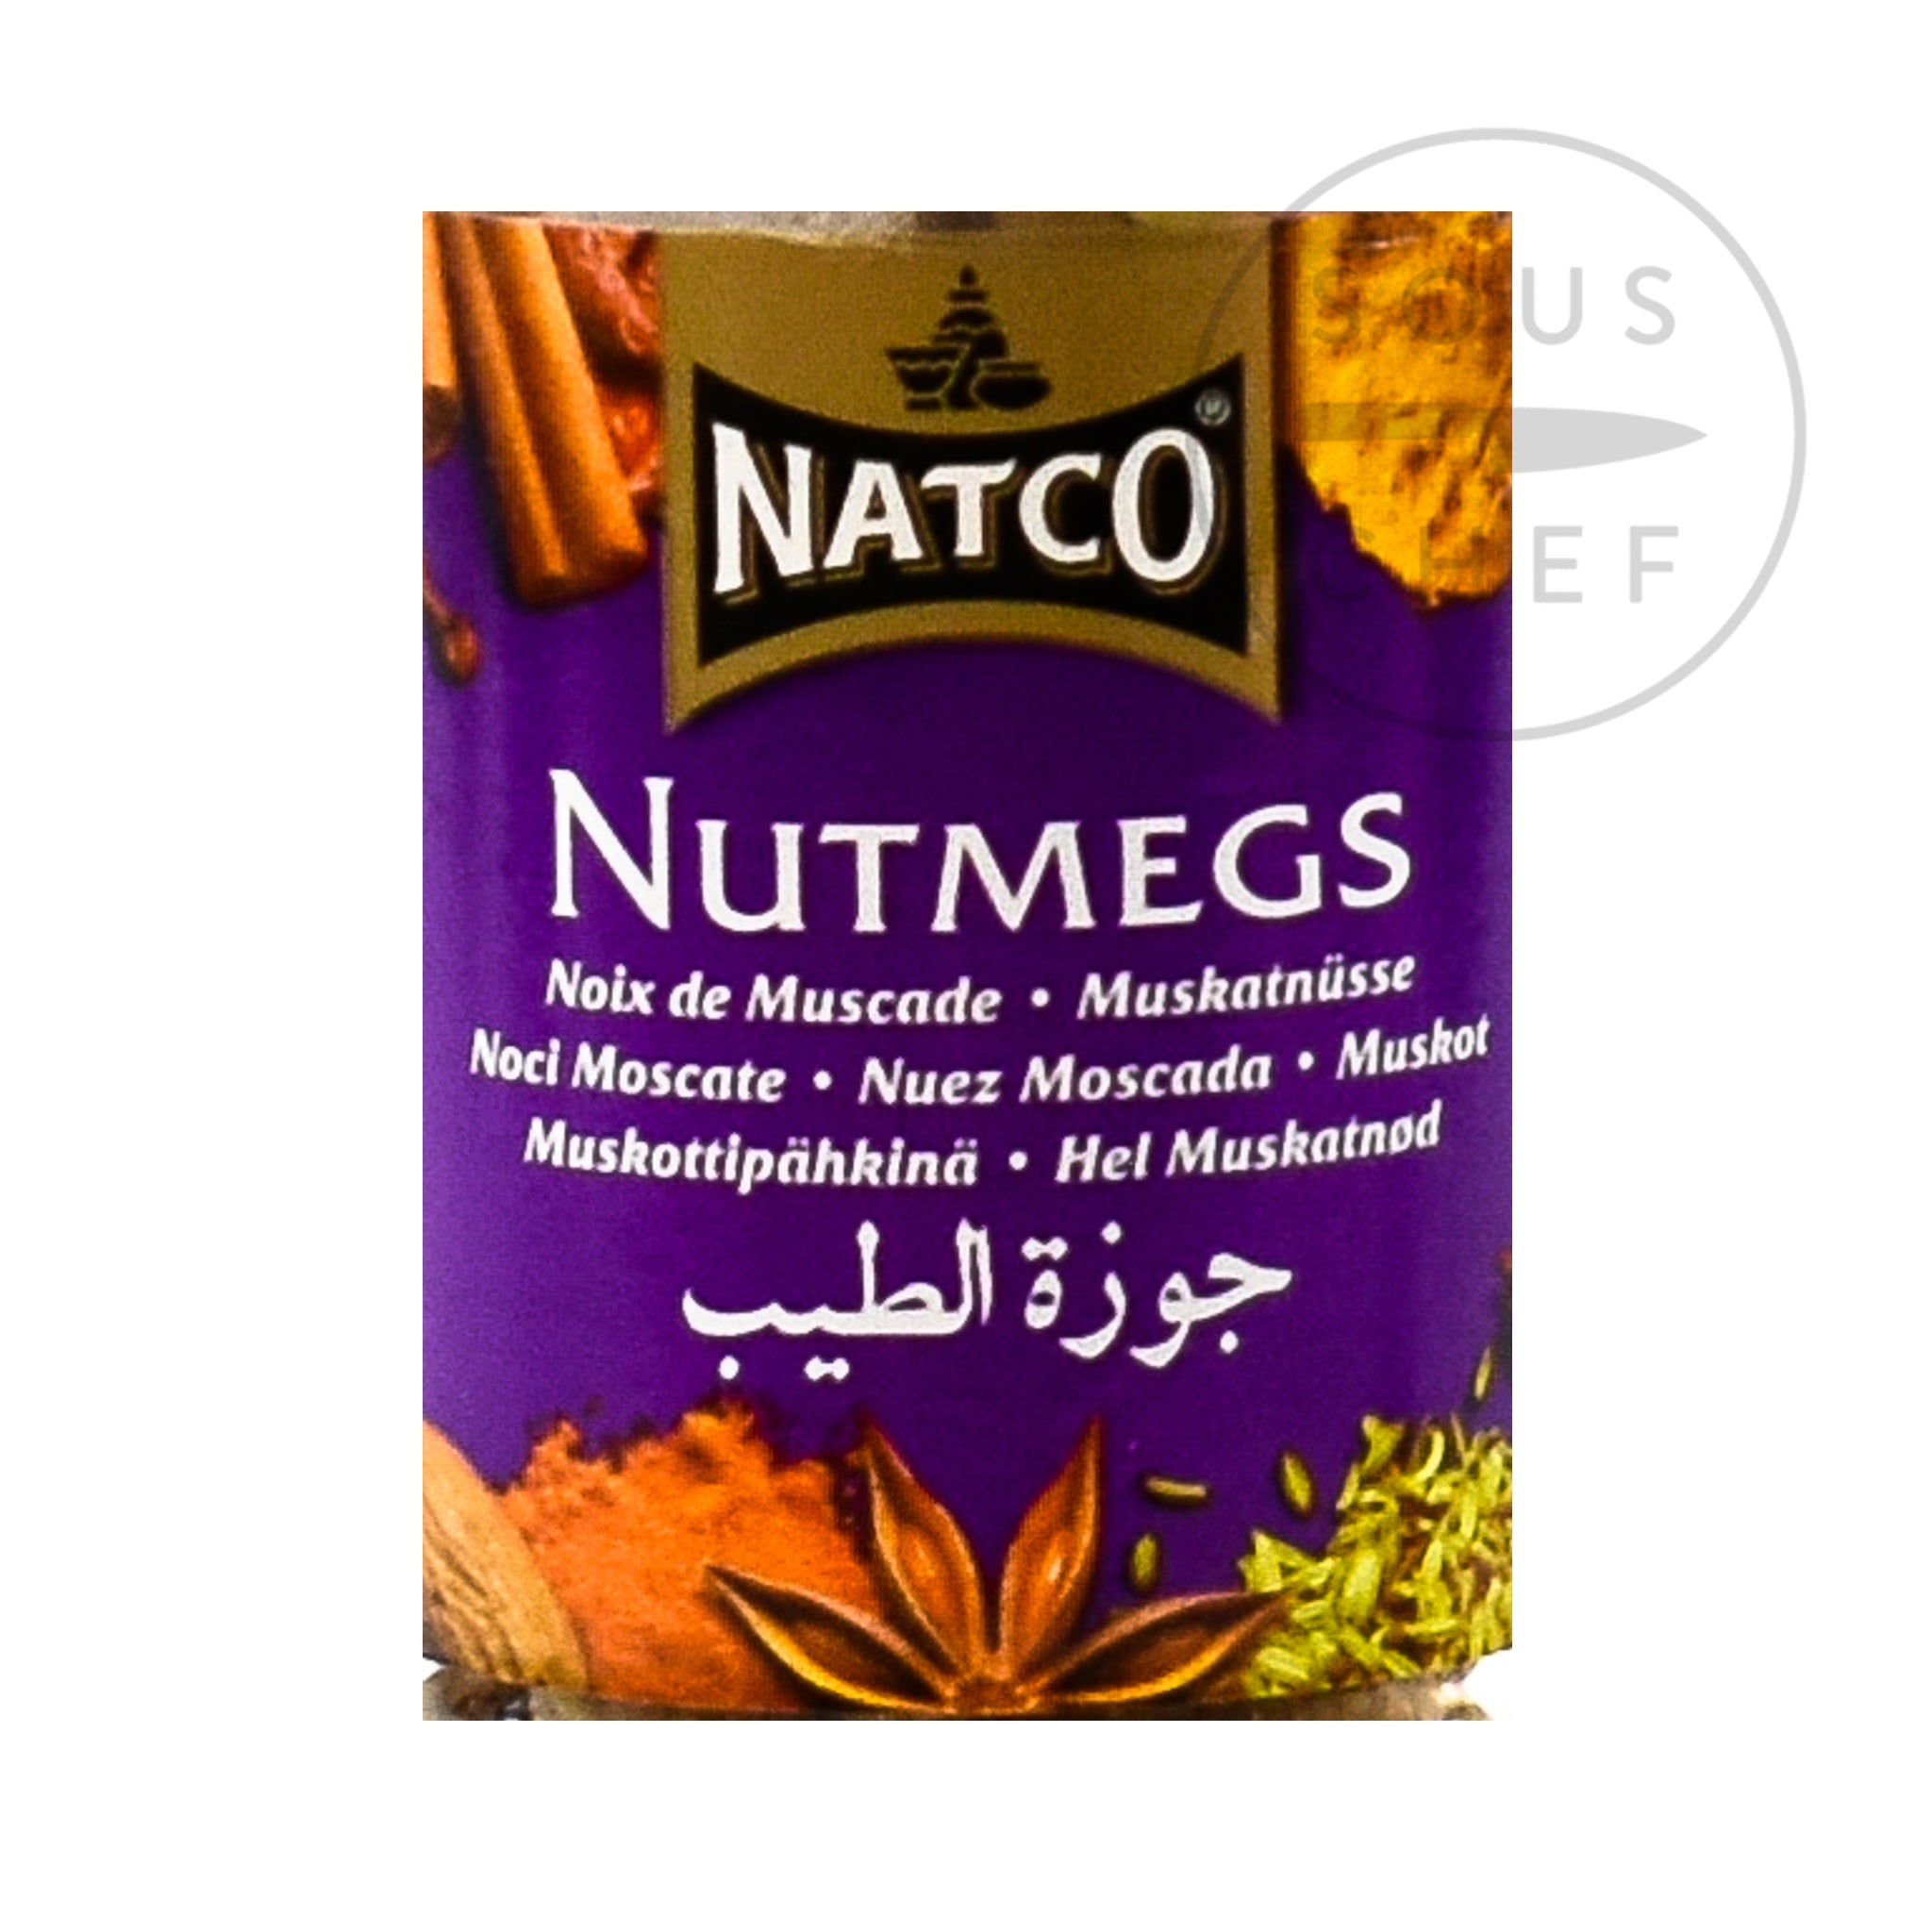 Natco Whole Nutmeg 100g